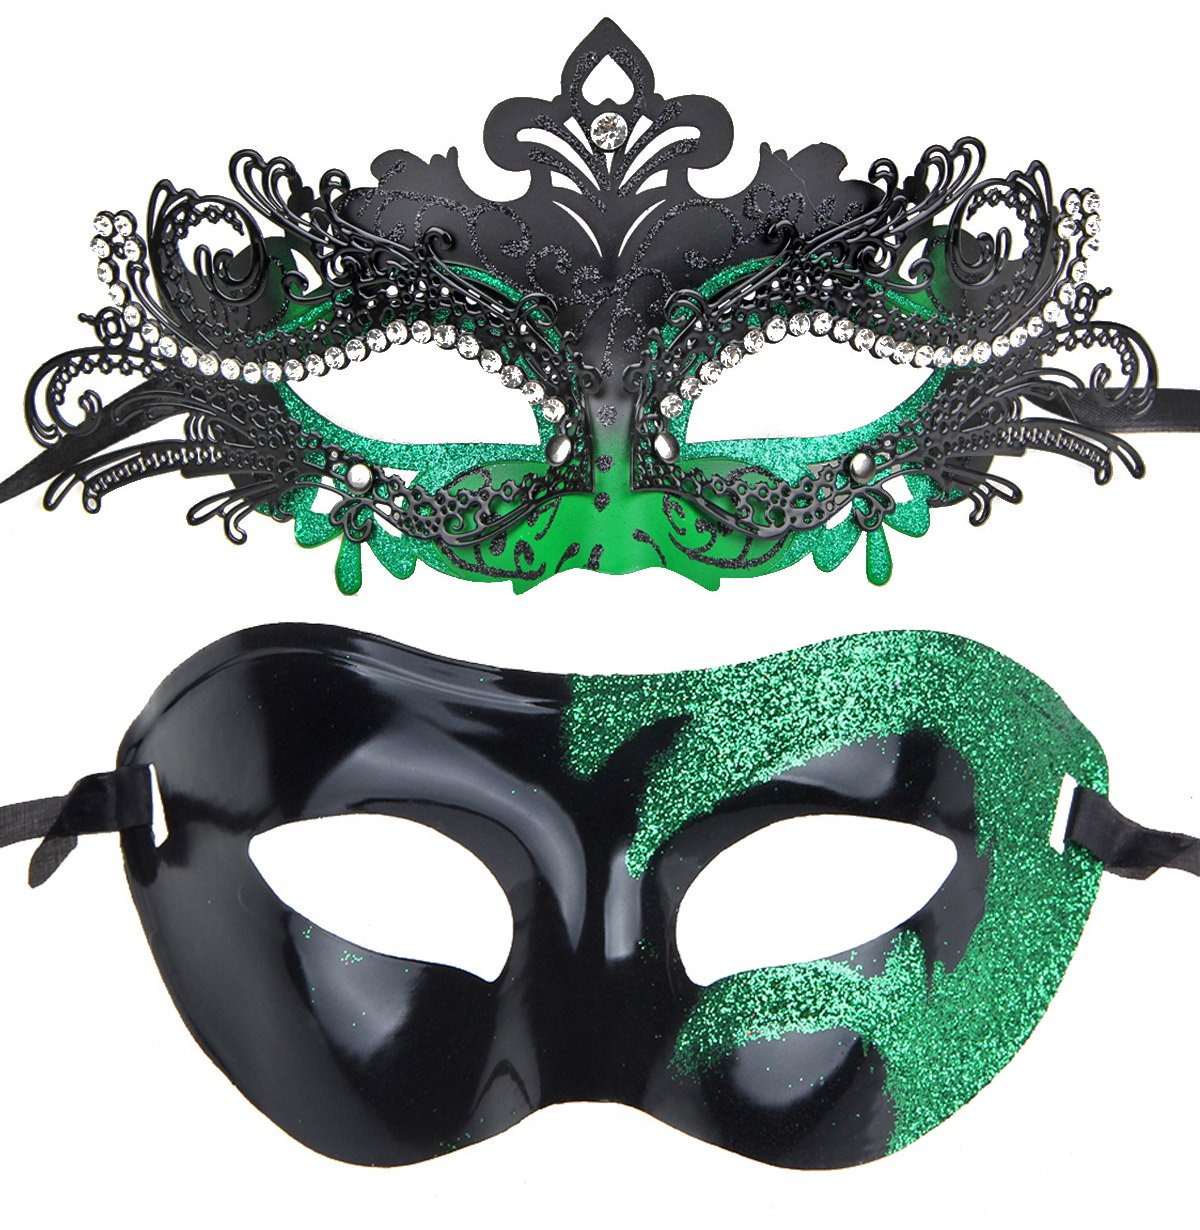 IETANG Couples Pair Half Venetian Masquerade Ball Mask Set Party Costume Accessory (green-15)